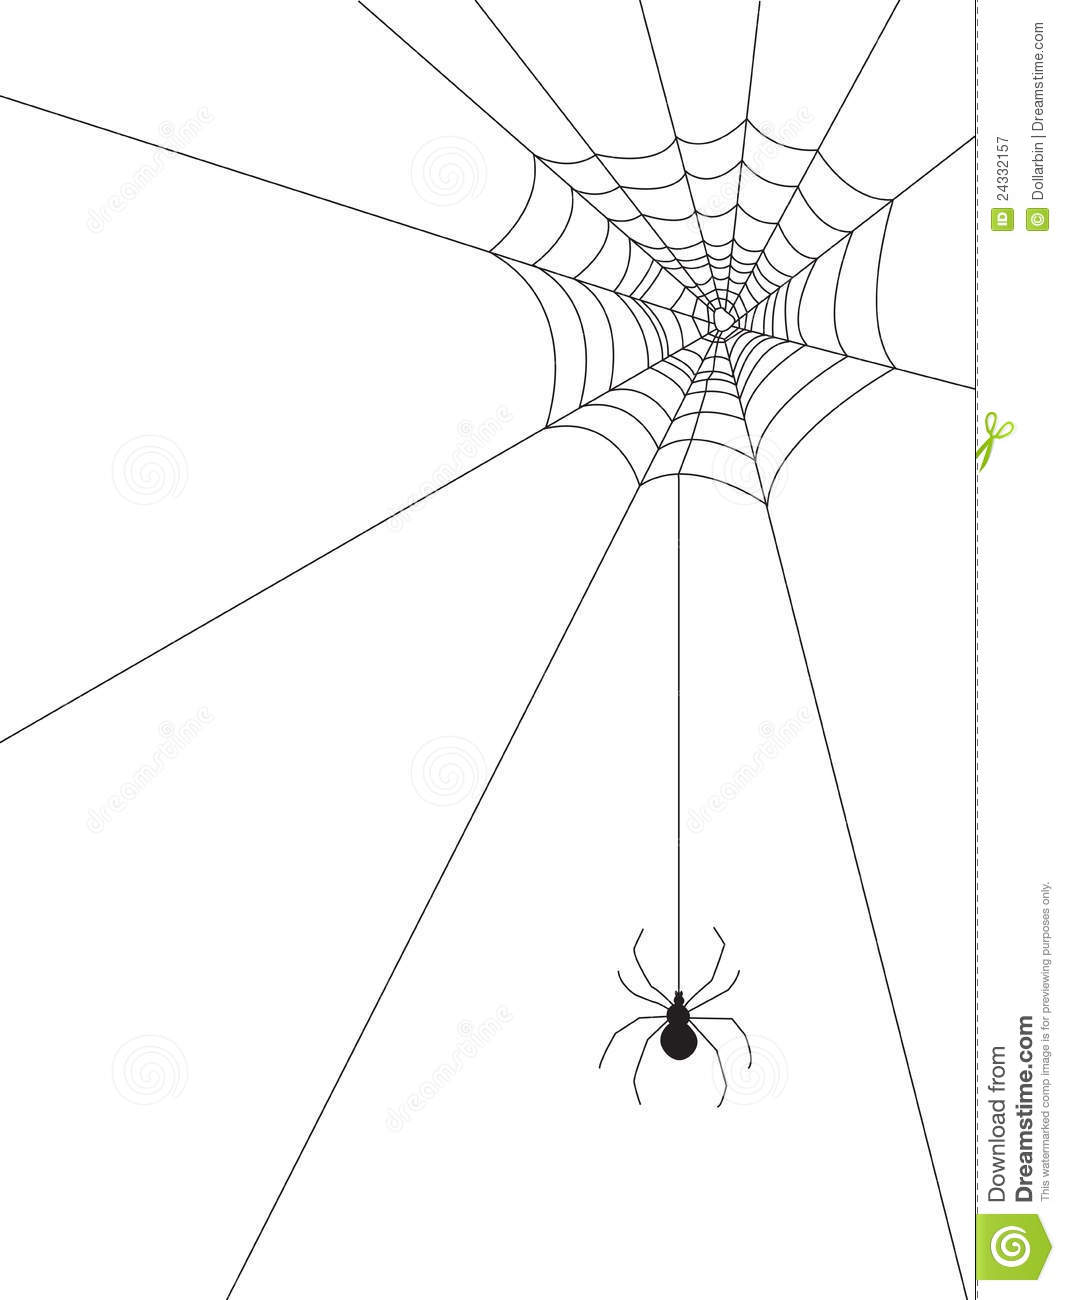 Spider web and spider on | Clipart Panda - Free Clipart Images